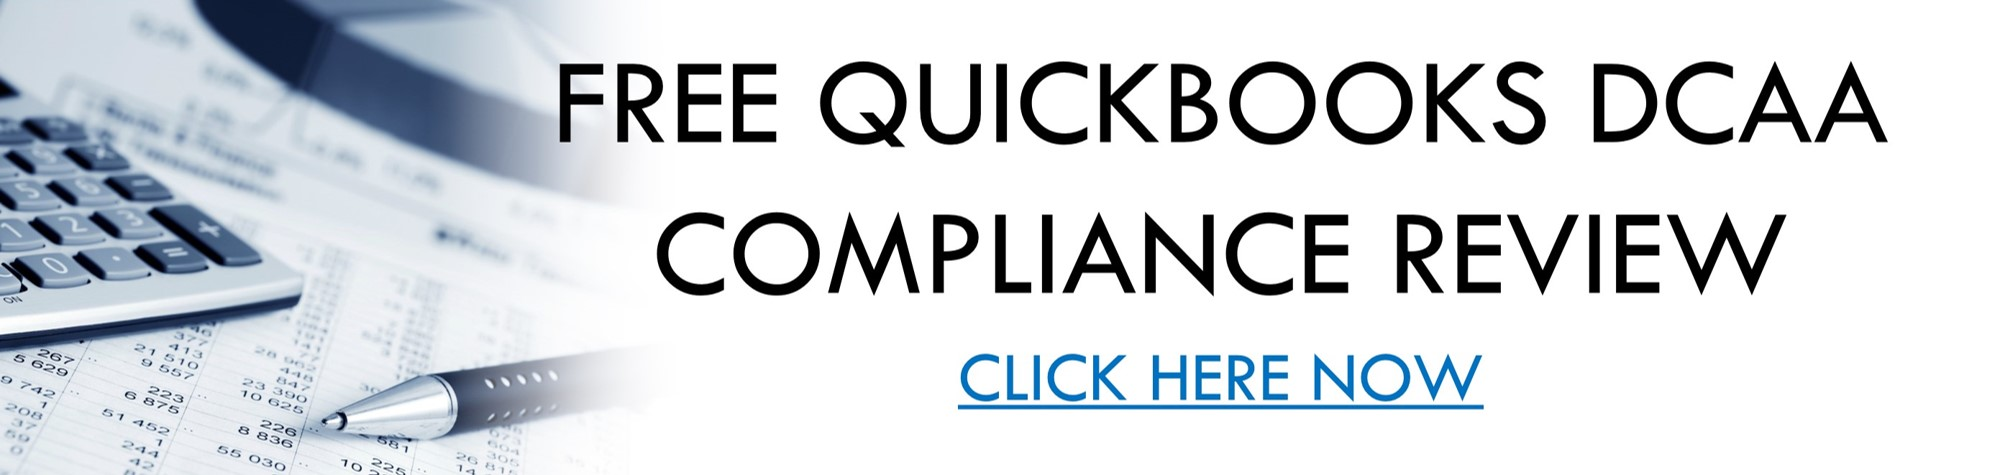 QuickBooks DCAA Compliance Review